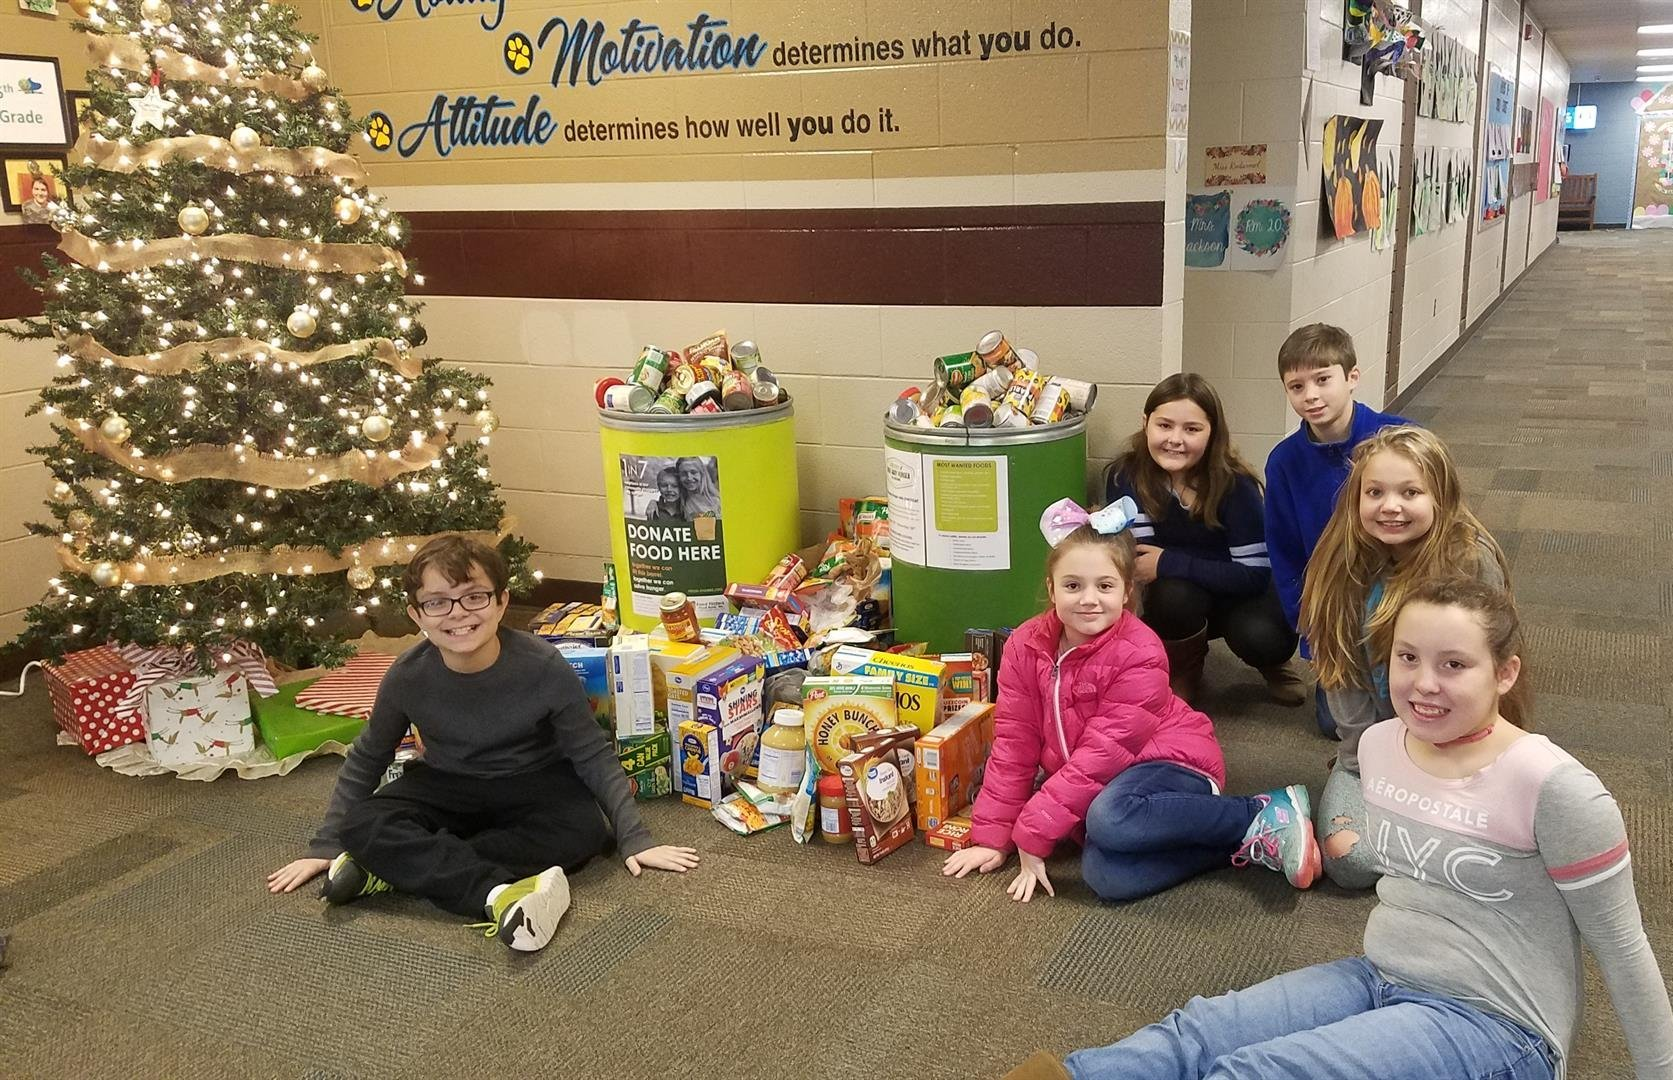 Items collected for food finders